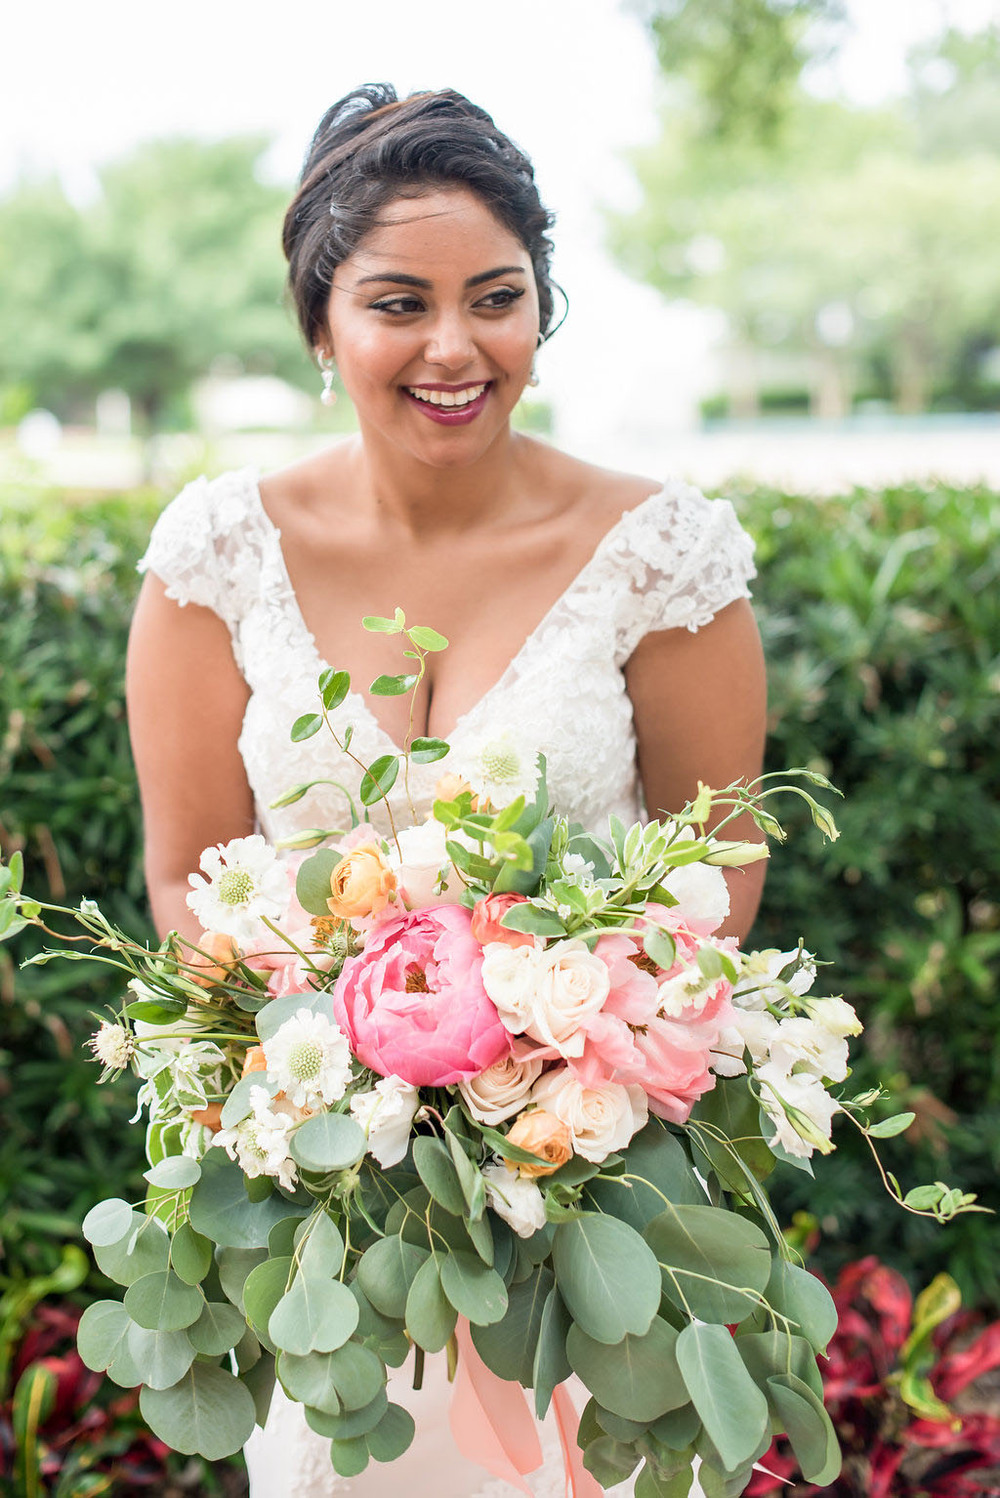 Disney World inspired wedding bouquet.jpg